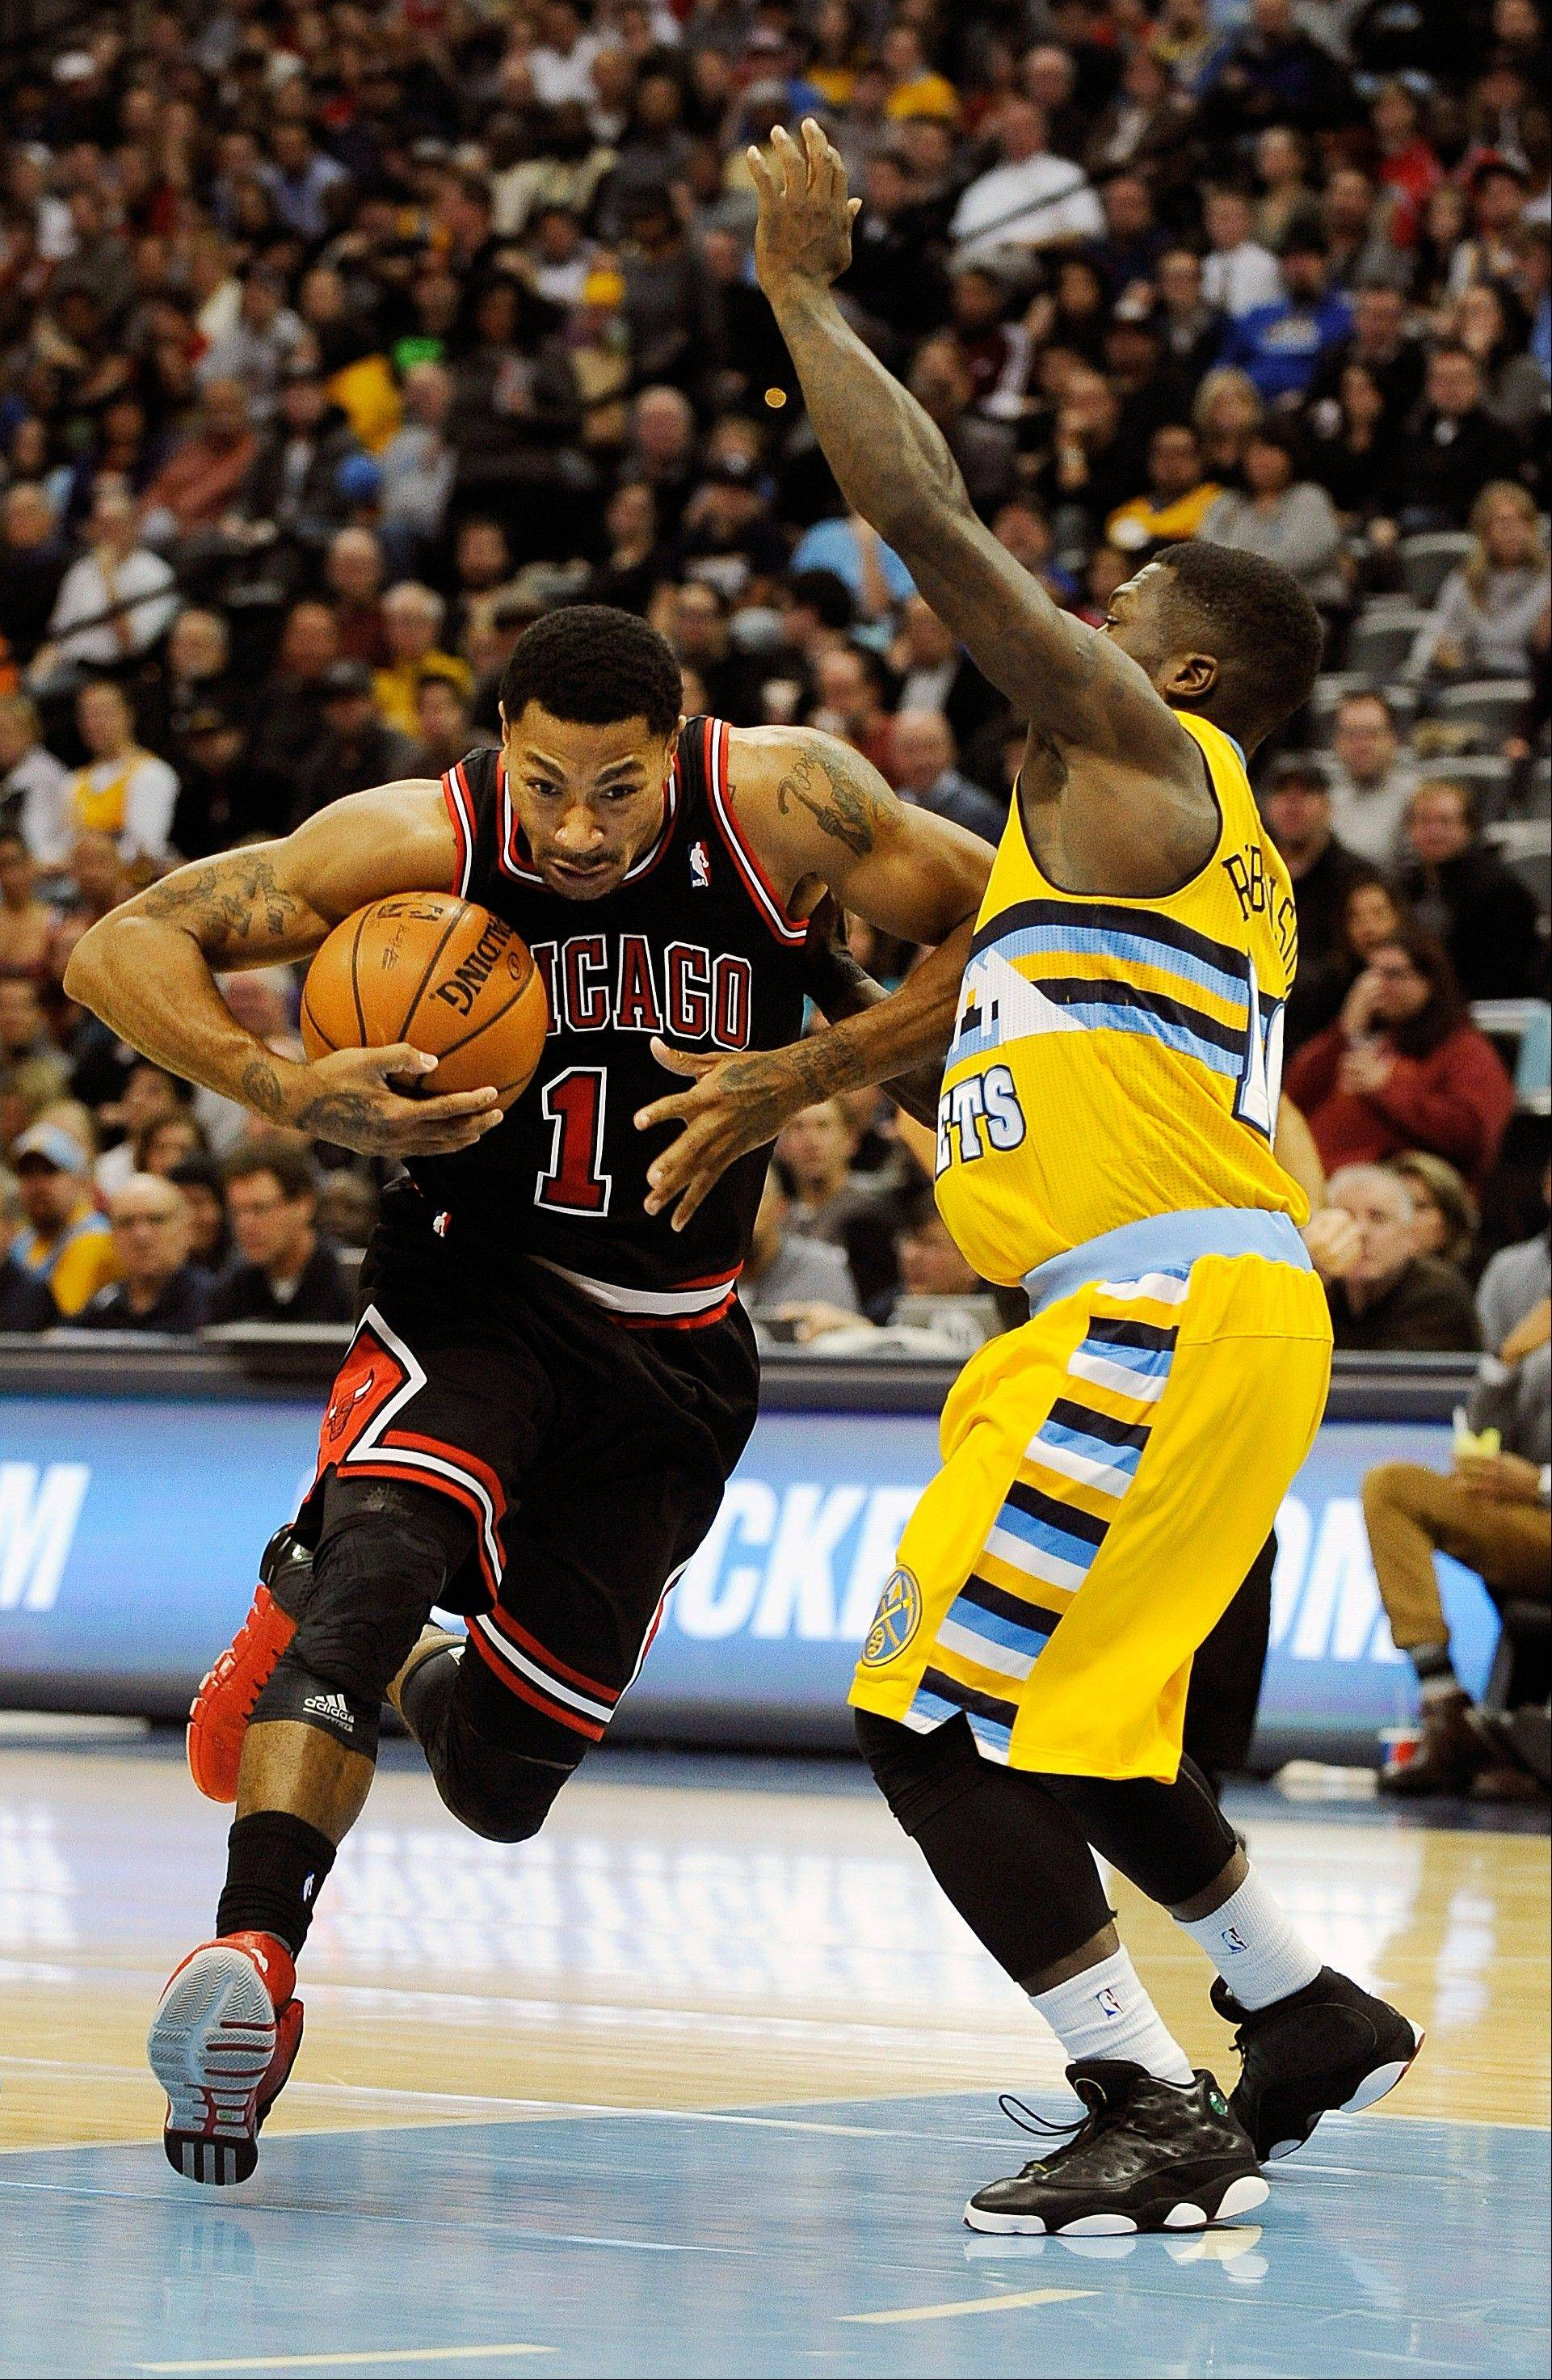 Chicago Bulls point guard Derrick Rose, left, drives against Denver Nuggets point guard Nate Robinson, right, in the first quarter of an NBA basketball game on Thursday, Nov. 21, 2013, in Denver.